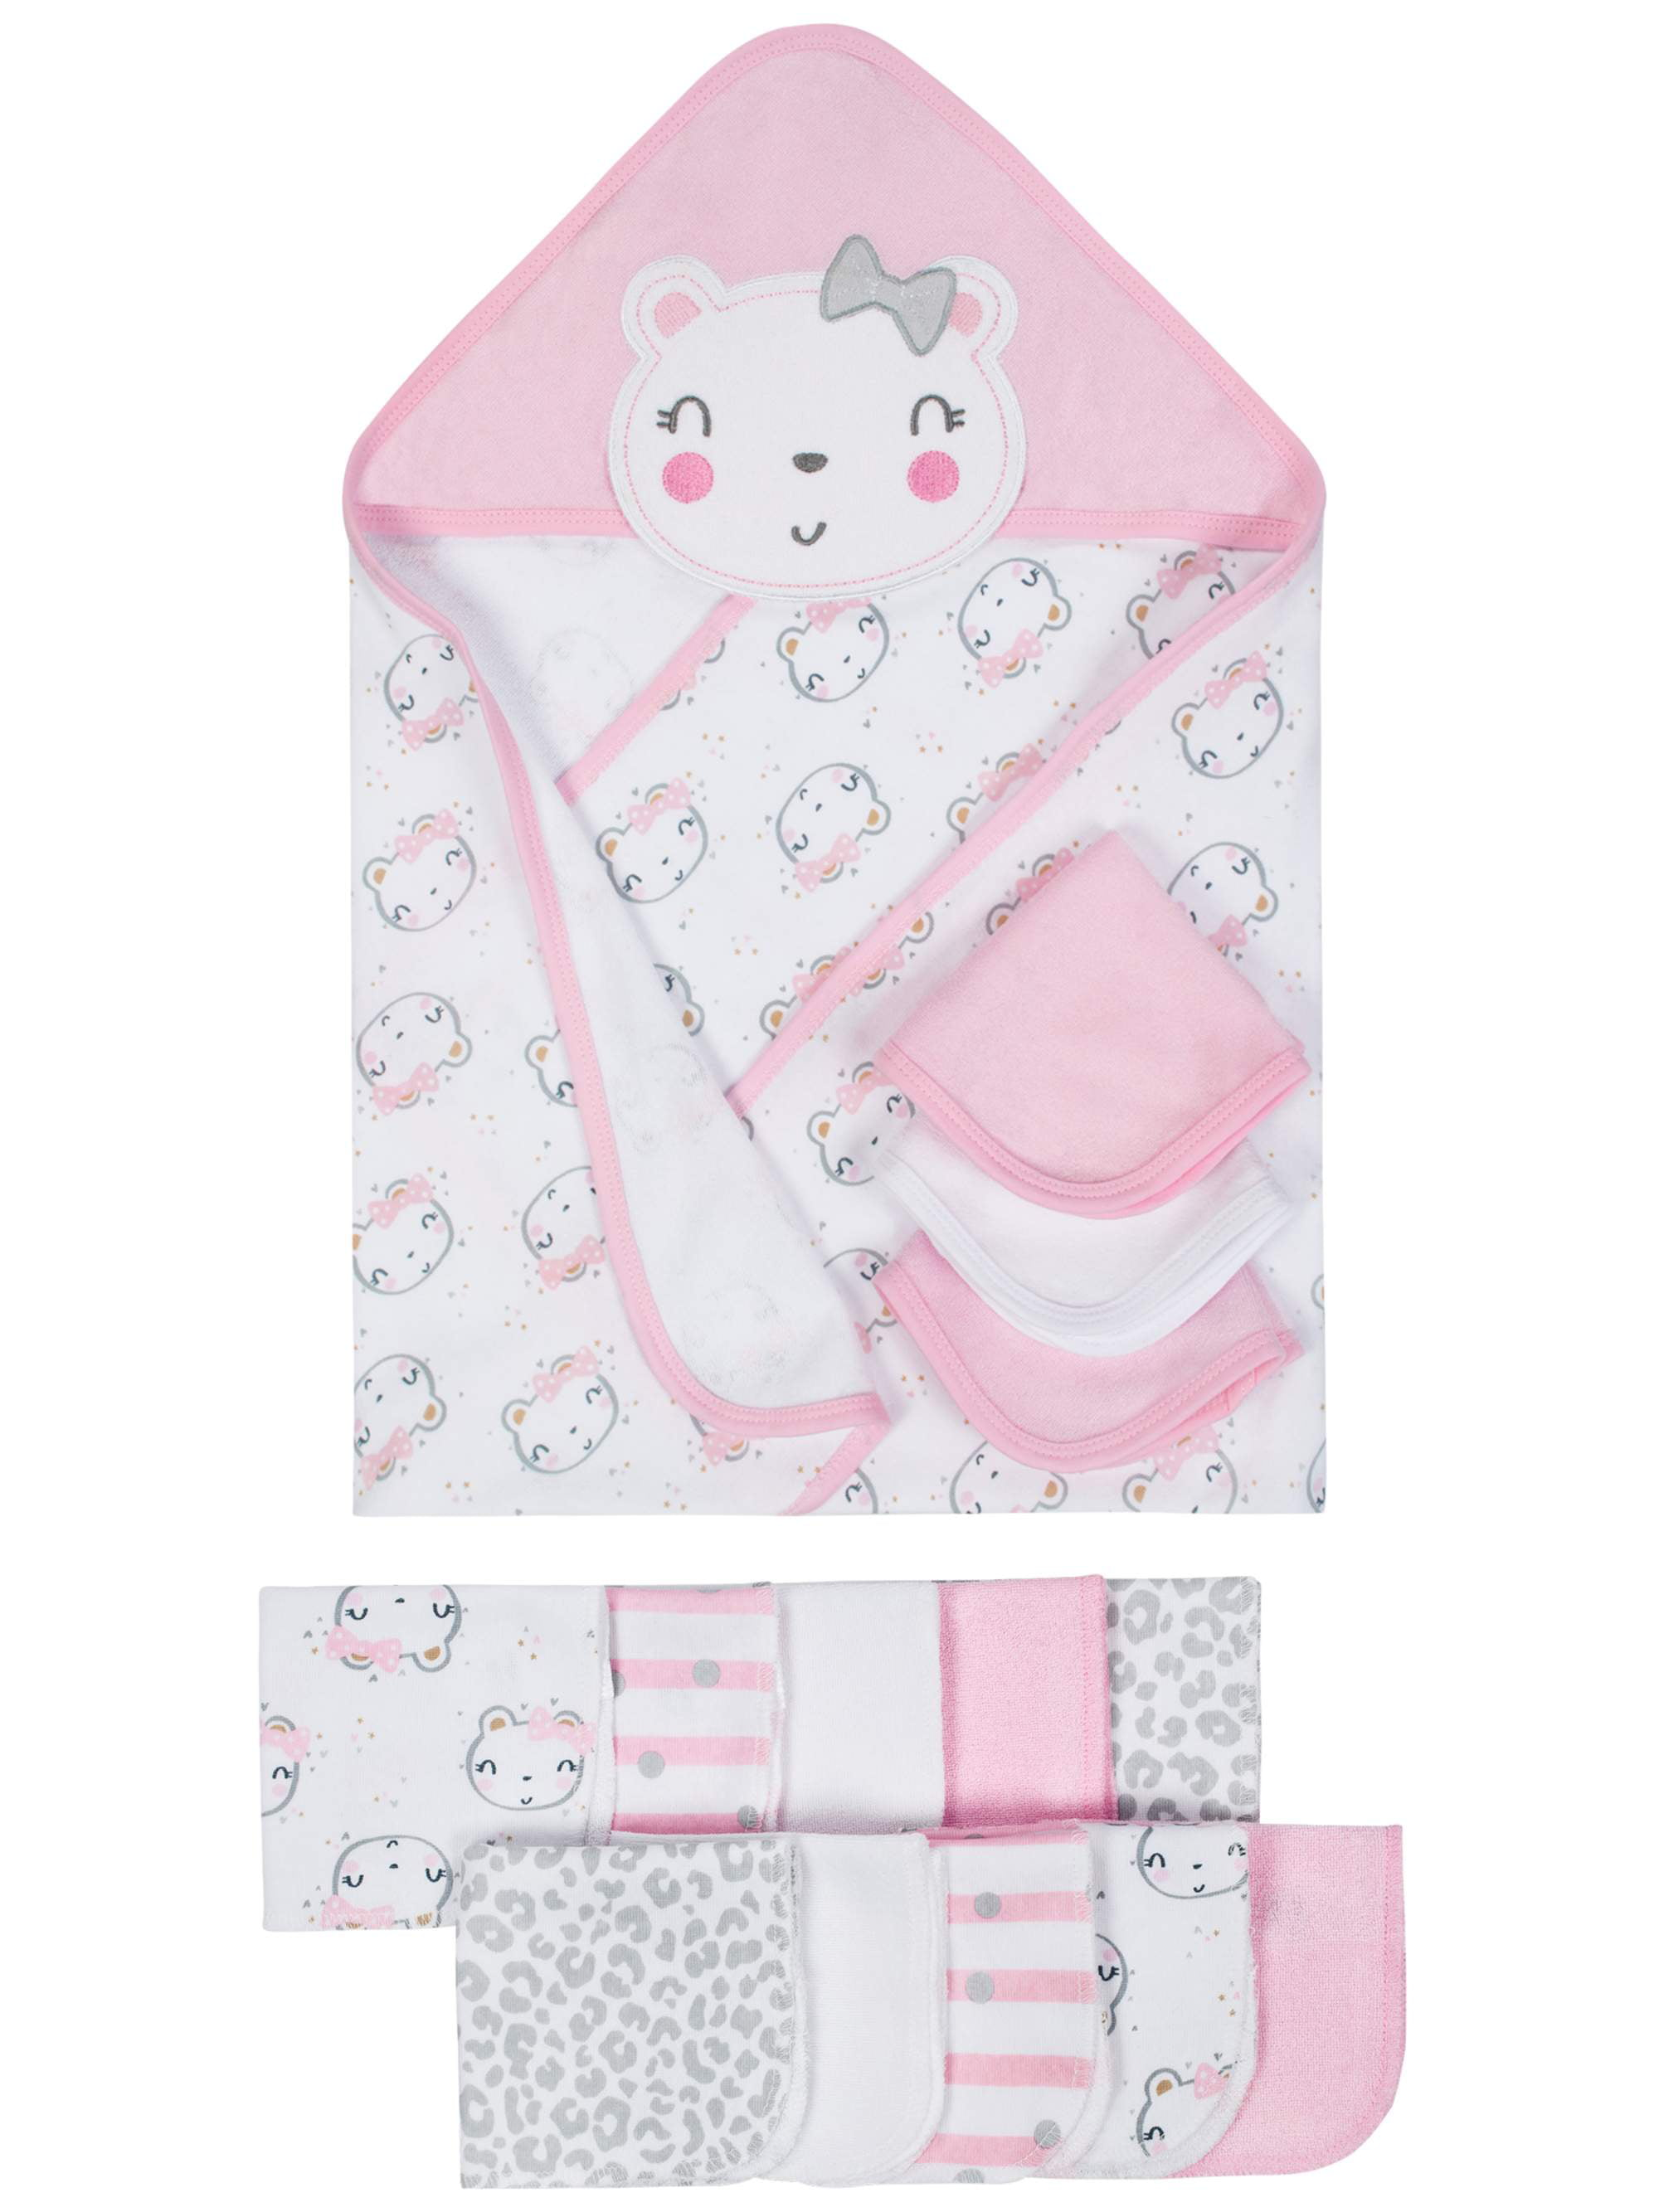 Terry Hooded Towels & Washcloths Bath Set, 14-piece (Baby Boys) by Gerber Childrenswear LLC